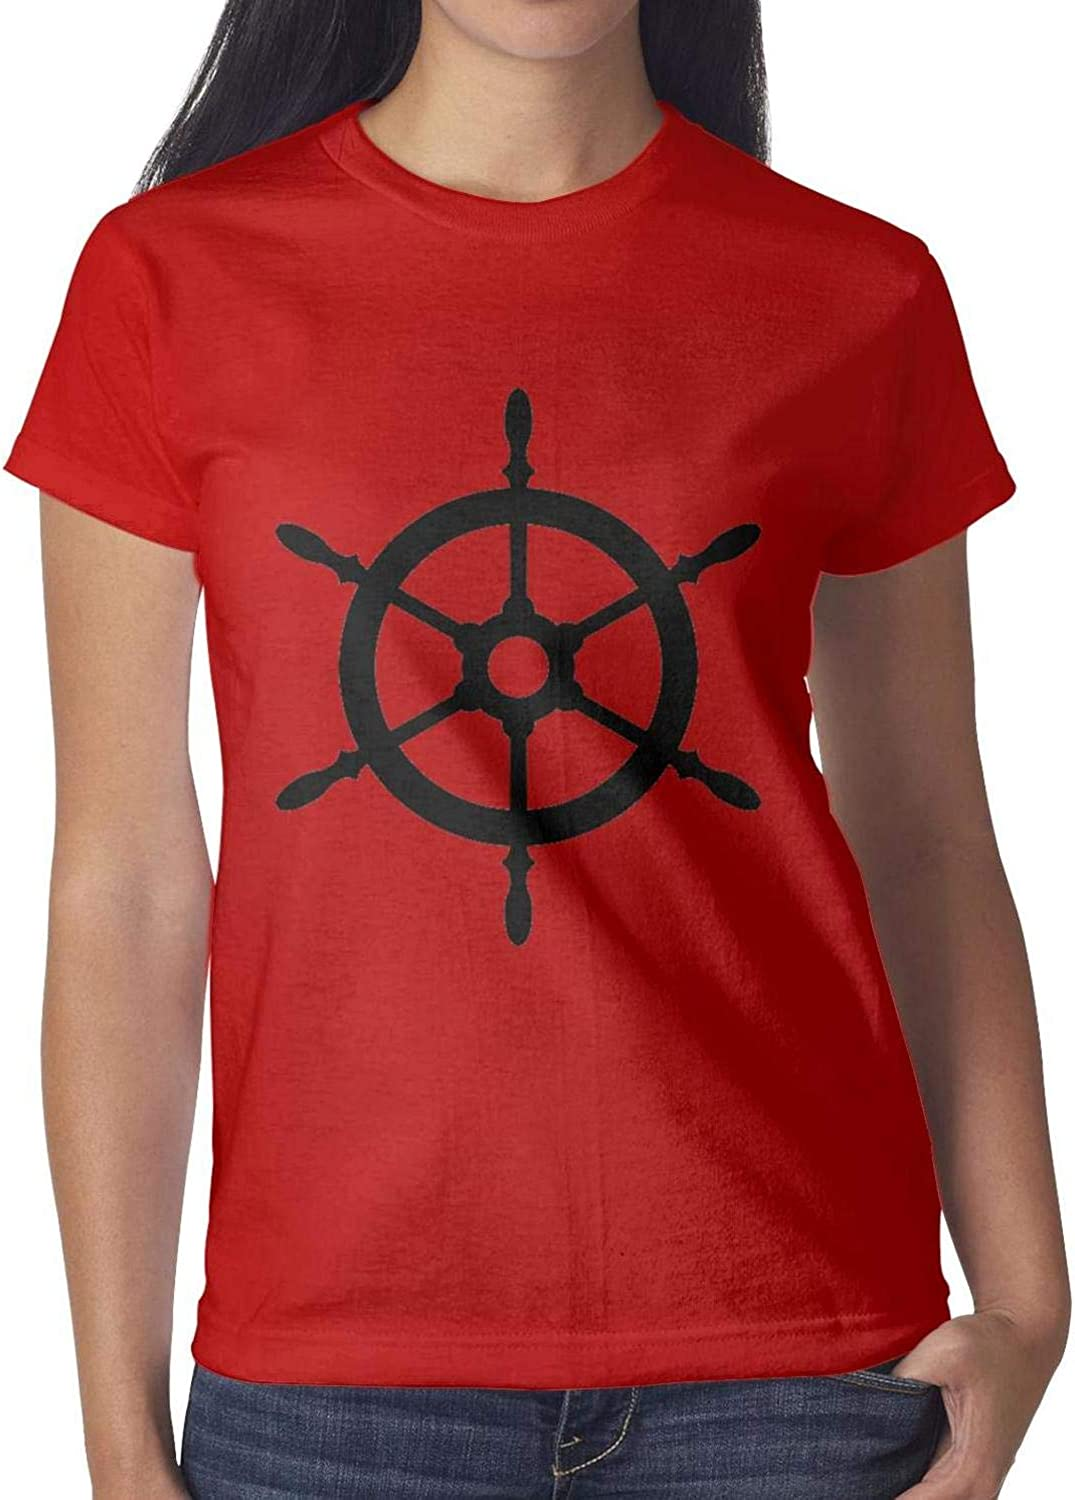 Tee Solid Cotton Shirts Girls Tops Ships Wheel Silhouette Assorted